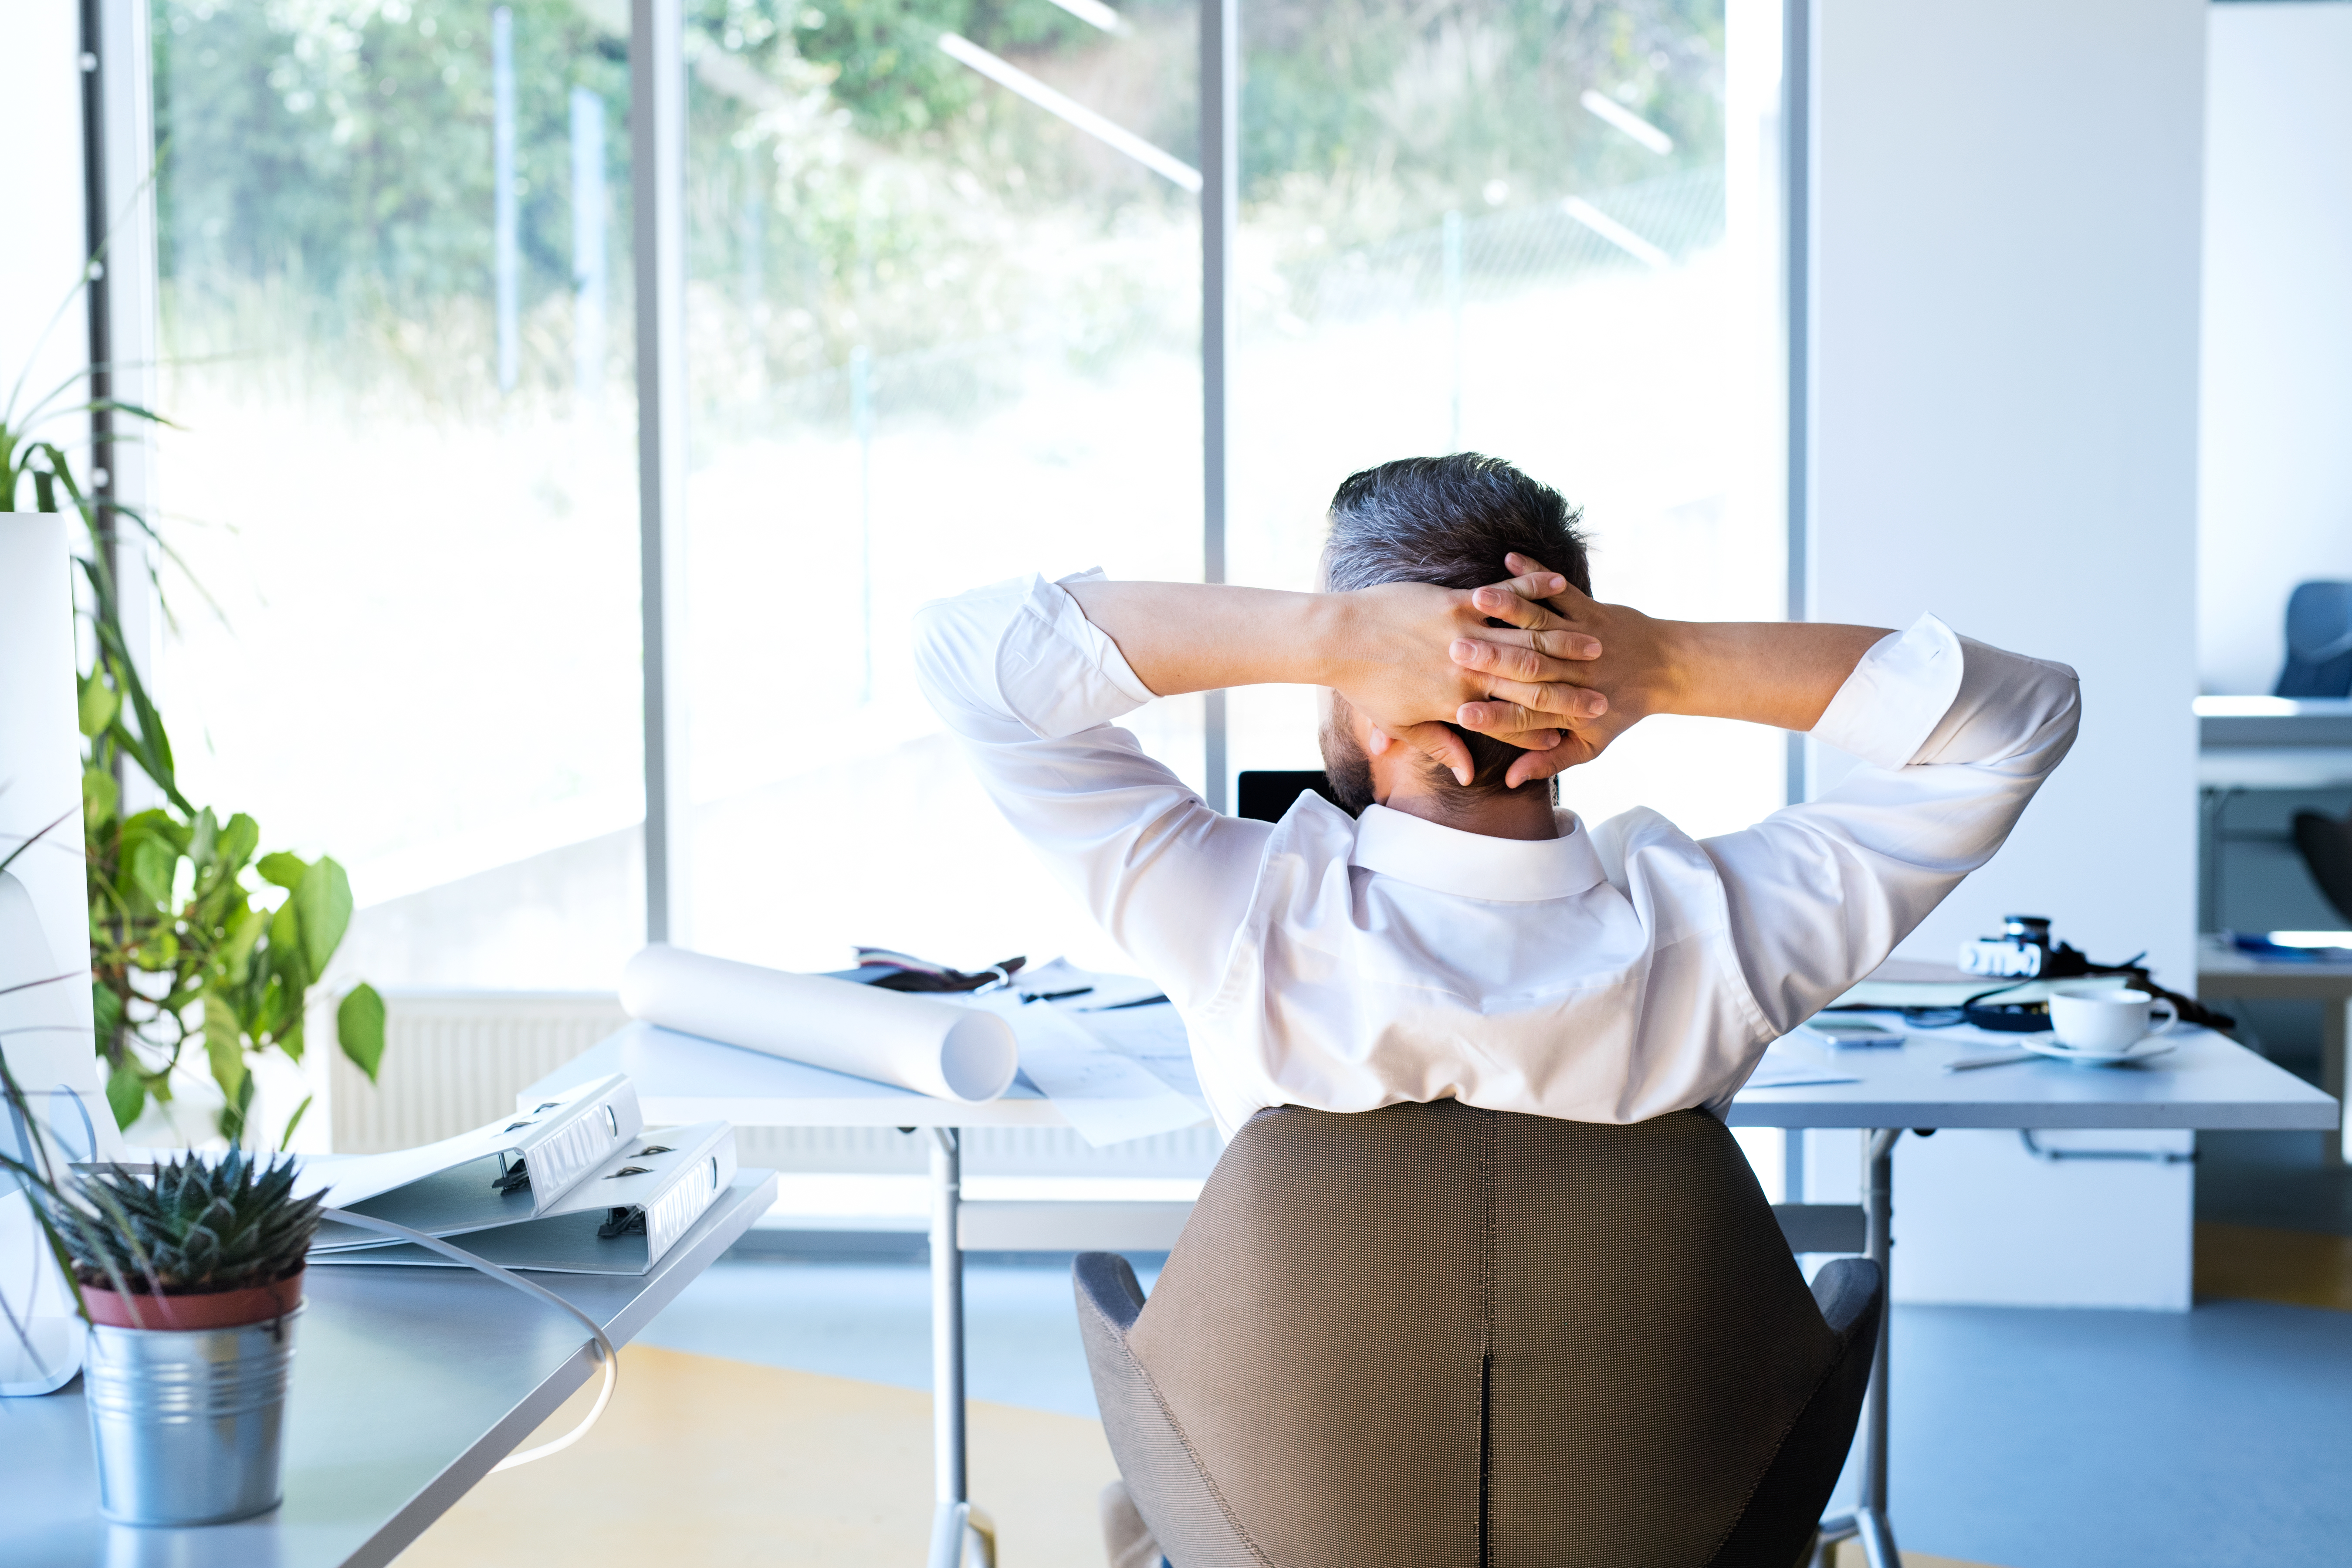 businessman-at-the-desk-in-his-office-resting-P2C76B3.jpg